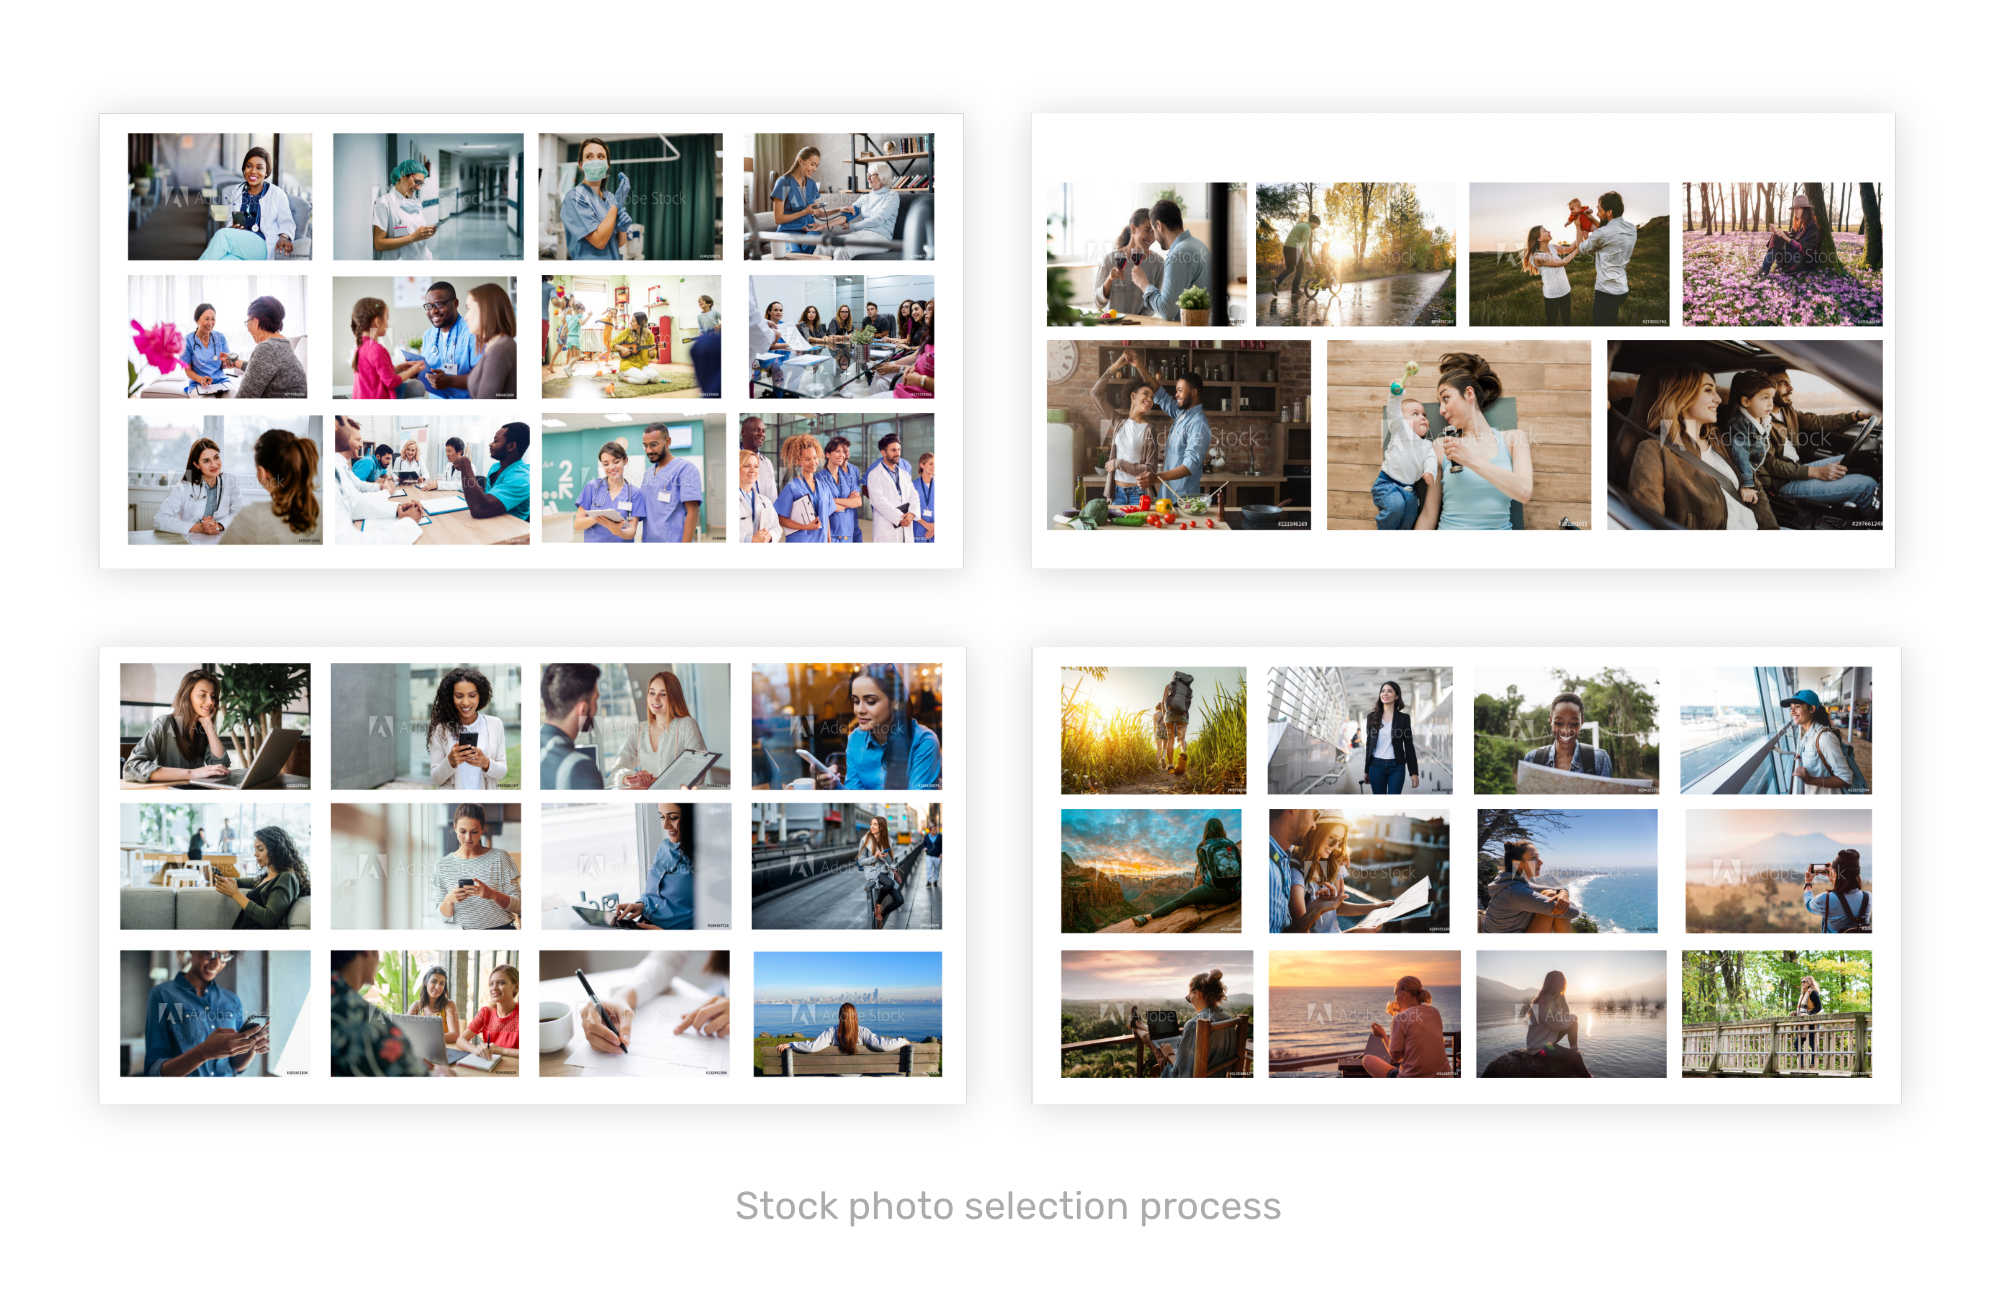 Integrated Health Solutions - imagery selection ideas